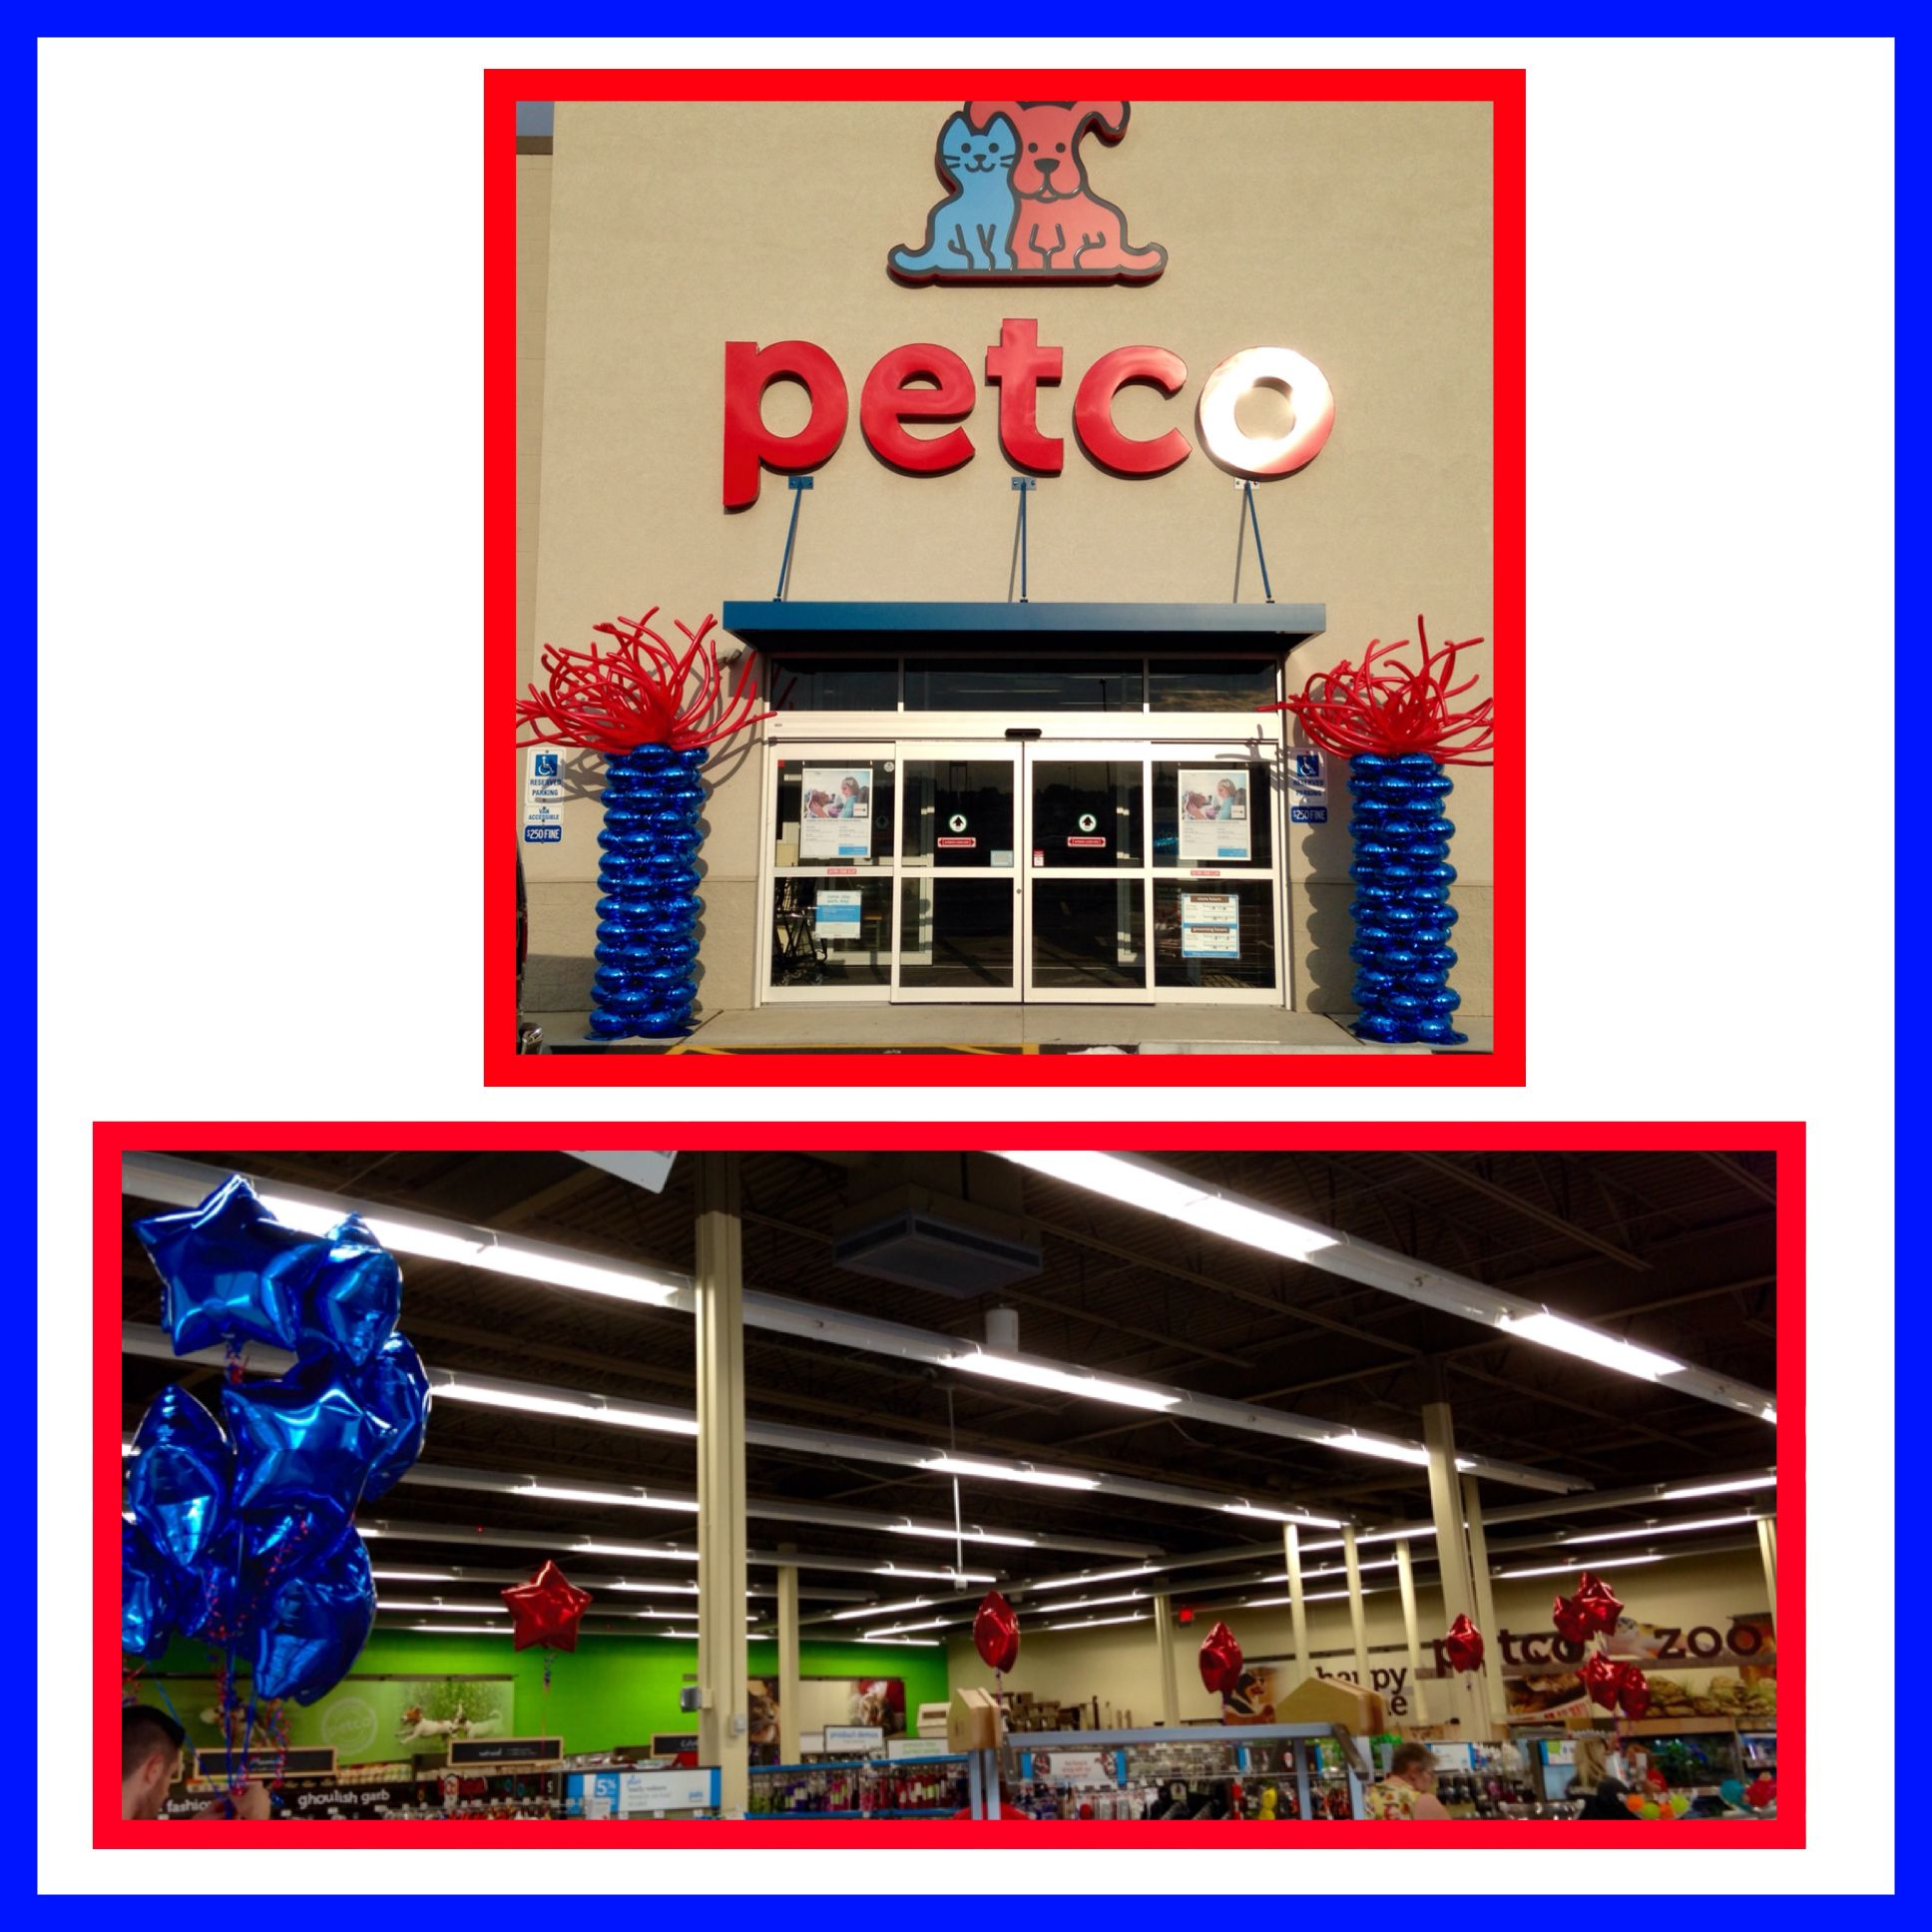 One Of Six Petco Store Openings This Morning Here We Are In Lima Oh Balloons Balloondecorating Lotparty Com Petco Petcoun Balloons Grand Opening Party